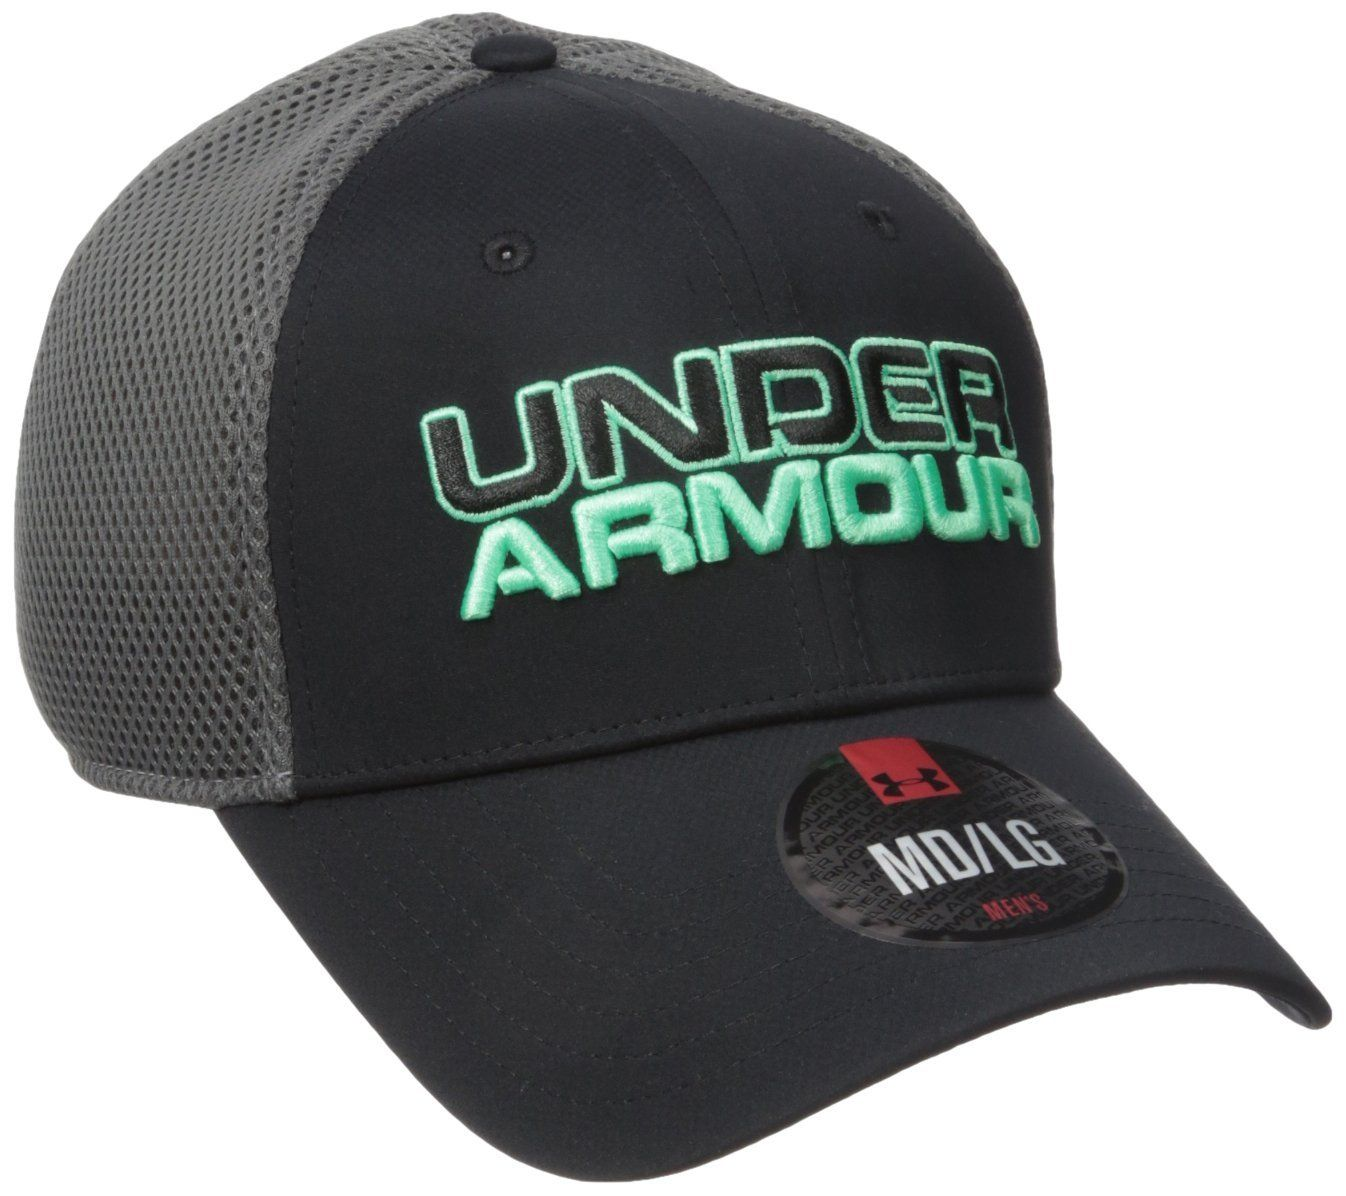 Under Armour Men s Under Armour Cap Gorra de Béisbol a95063b809e